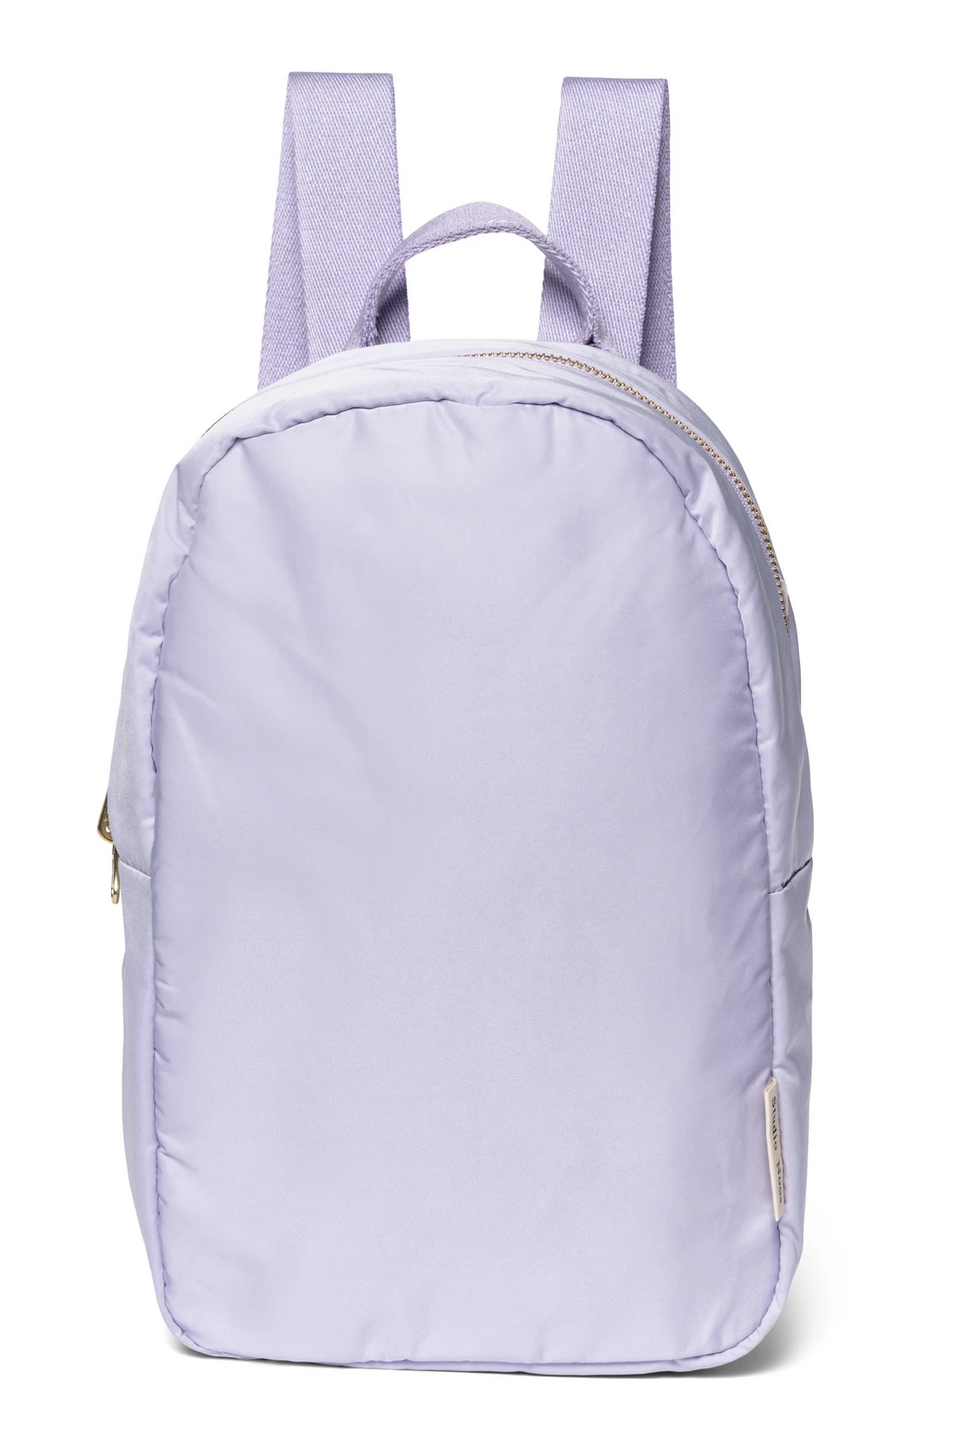 Puffy Backpack Lilac - Studio Noos-1